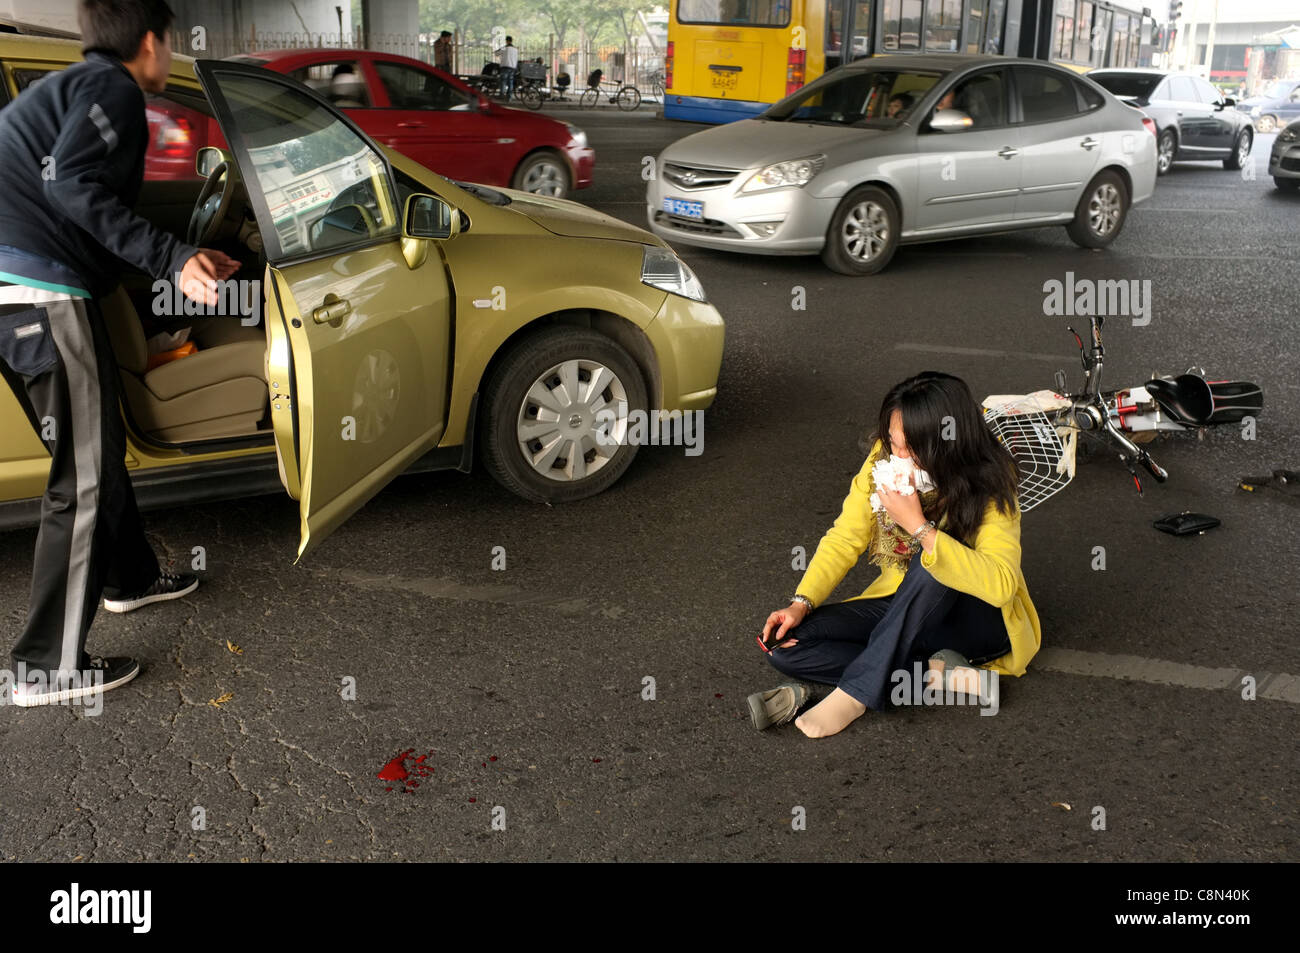 A woman sits on the ground after her bicycle was hit by a car while the driver tries to close the car door during - Stock Image